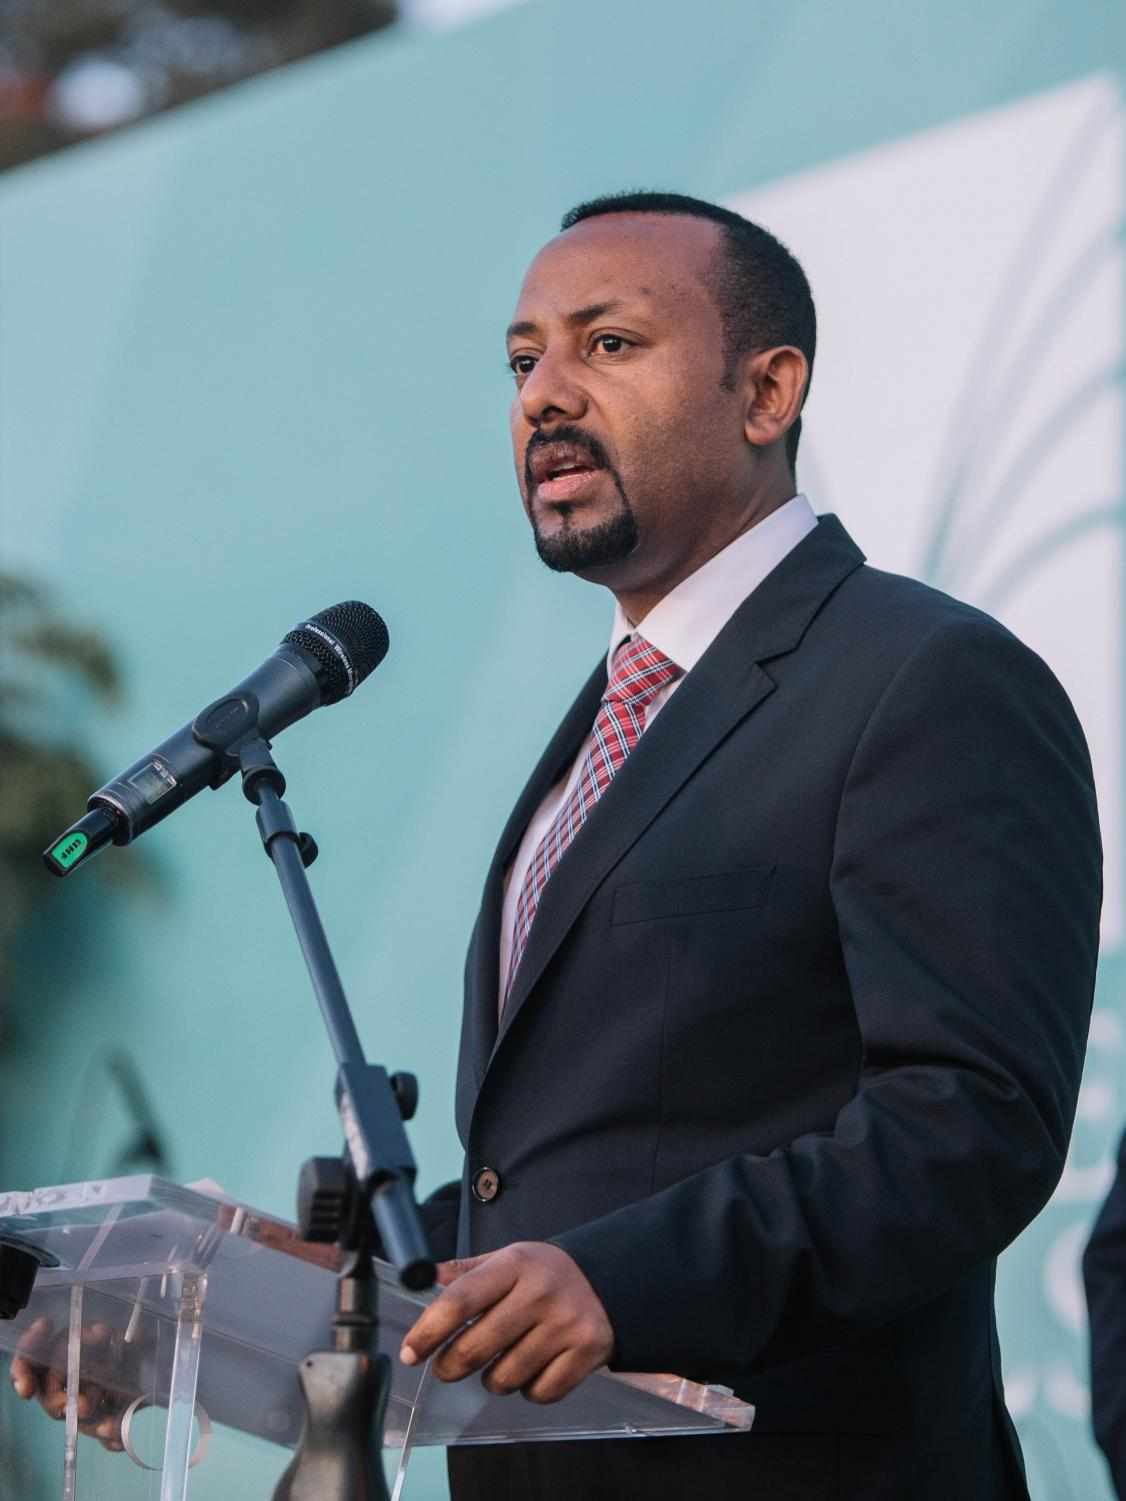 Prime Minister Abiy Ahmed speaks at an inauguration event in Addis Ababa. Ahmed was honored for his role in maintaining peace in Ethiopia.